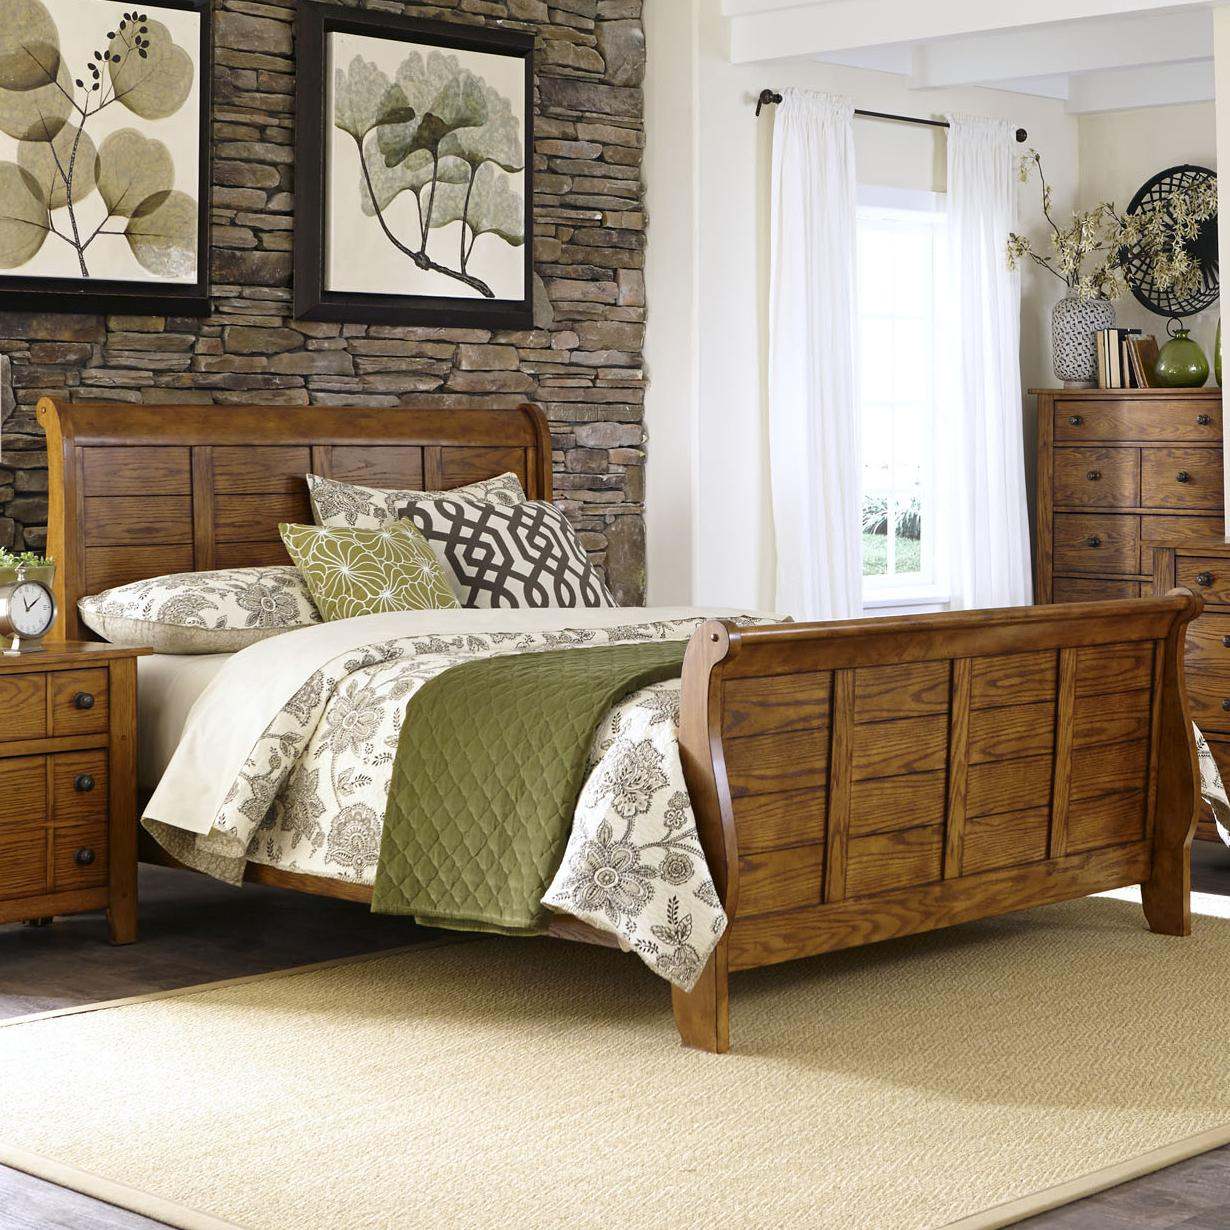 grandpa 39 s cabin queen sleigh bed with paneling by liberty. Black Bedroom Furniture Sets. Home Design Ideas